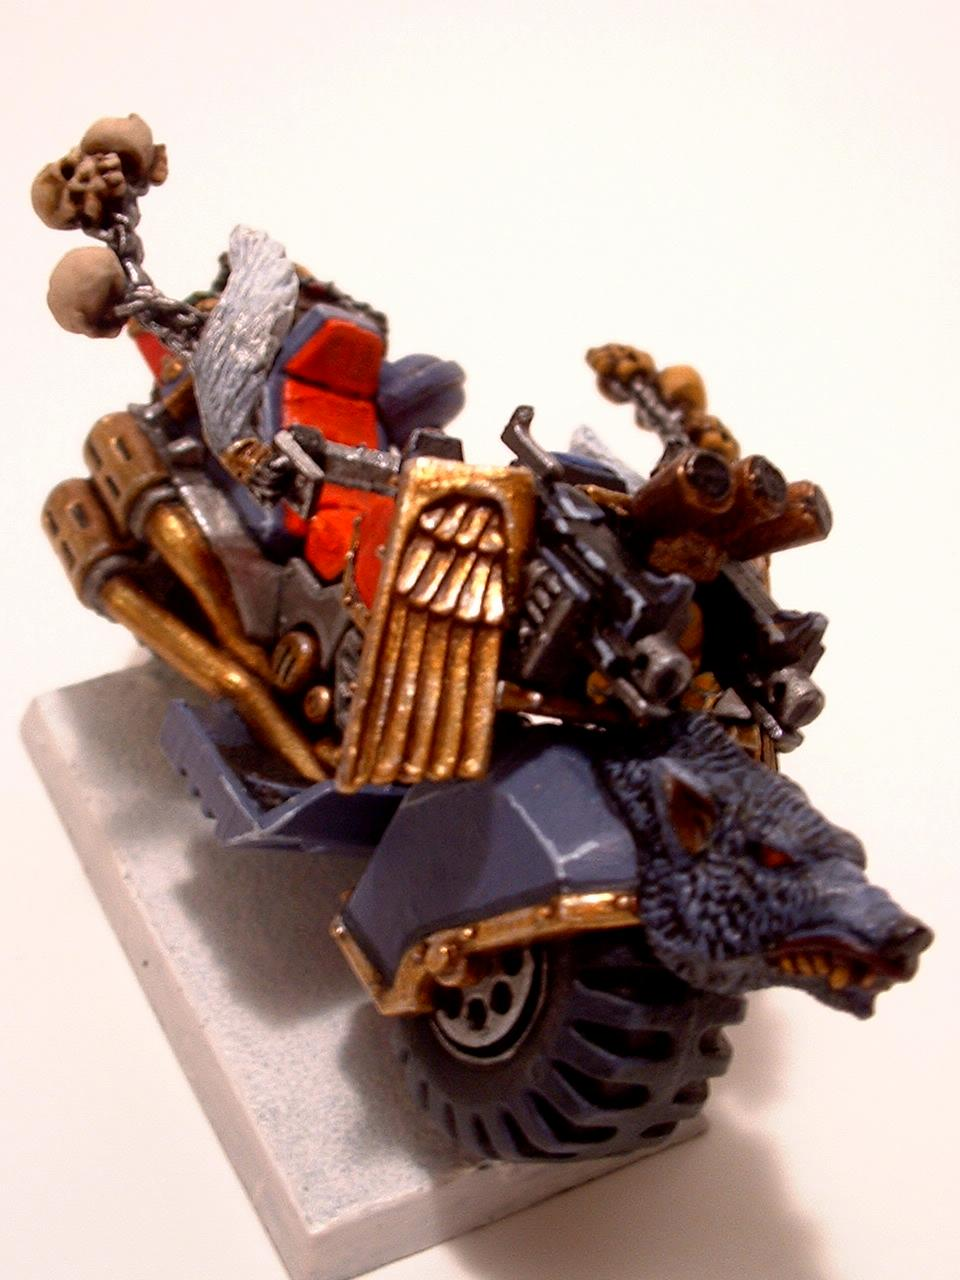 Bike, Space Marines, Space Wolves, Wolf Guard Battle Leader